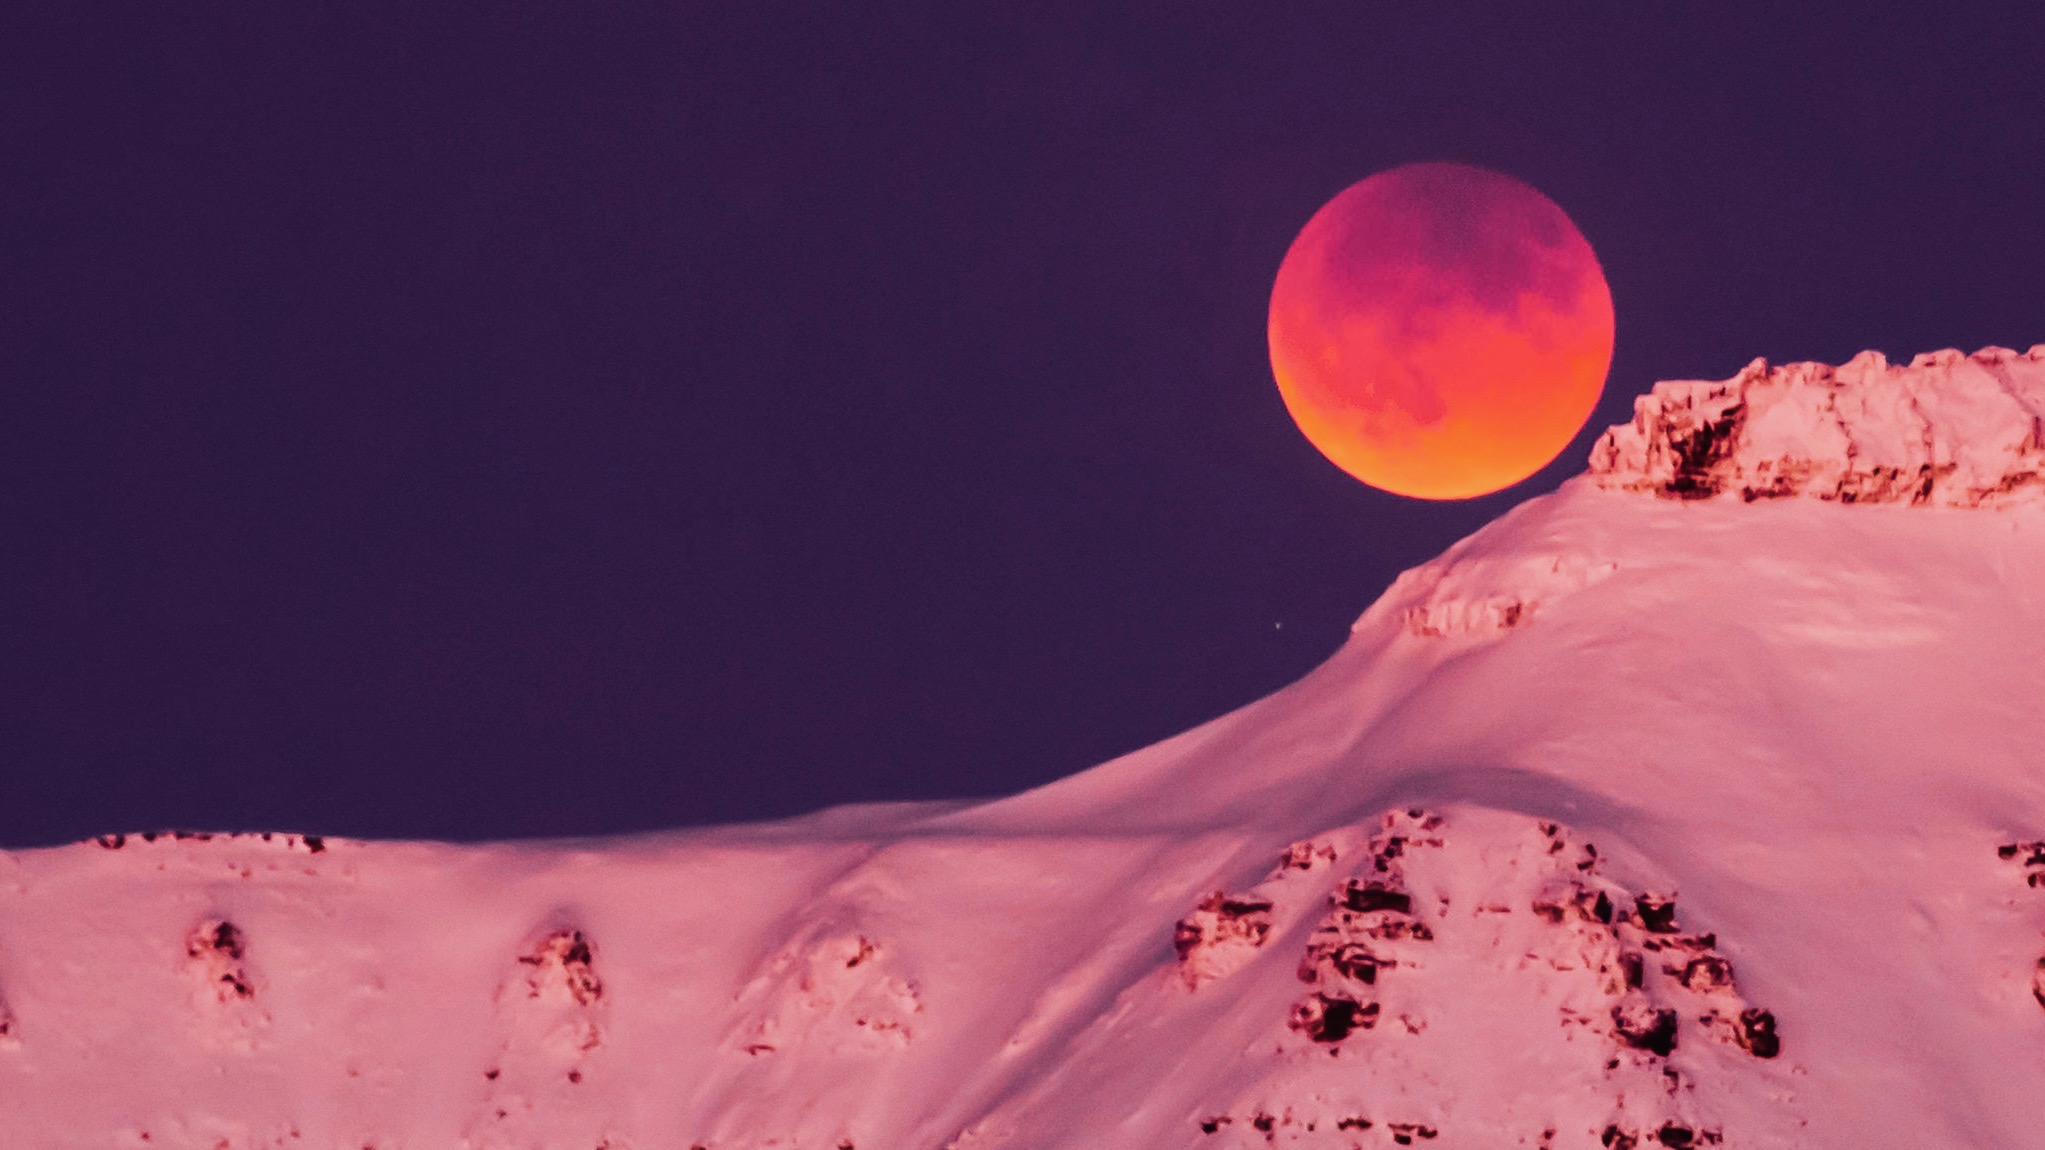 The blood moon matters most to those who look up every night.